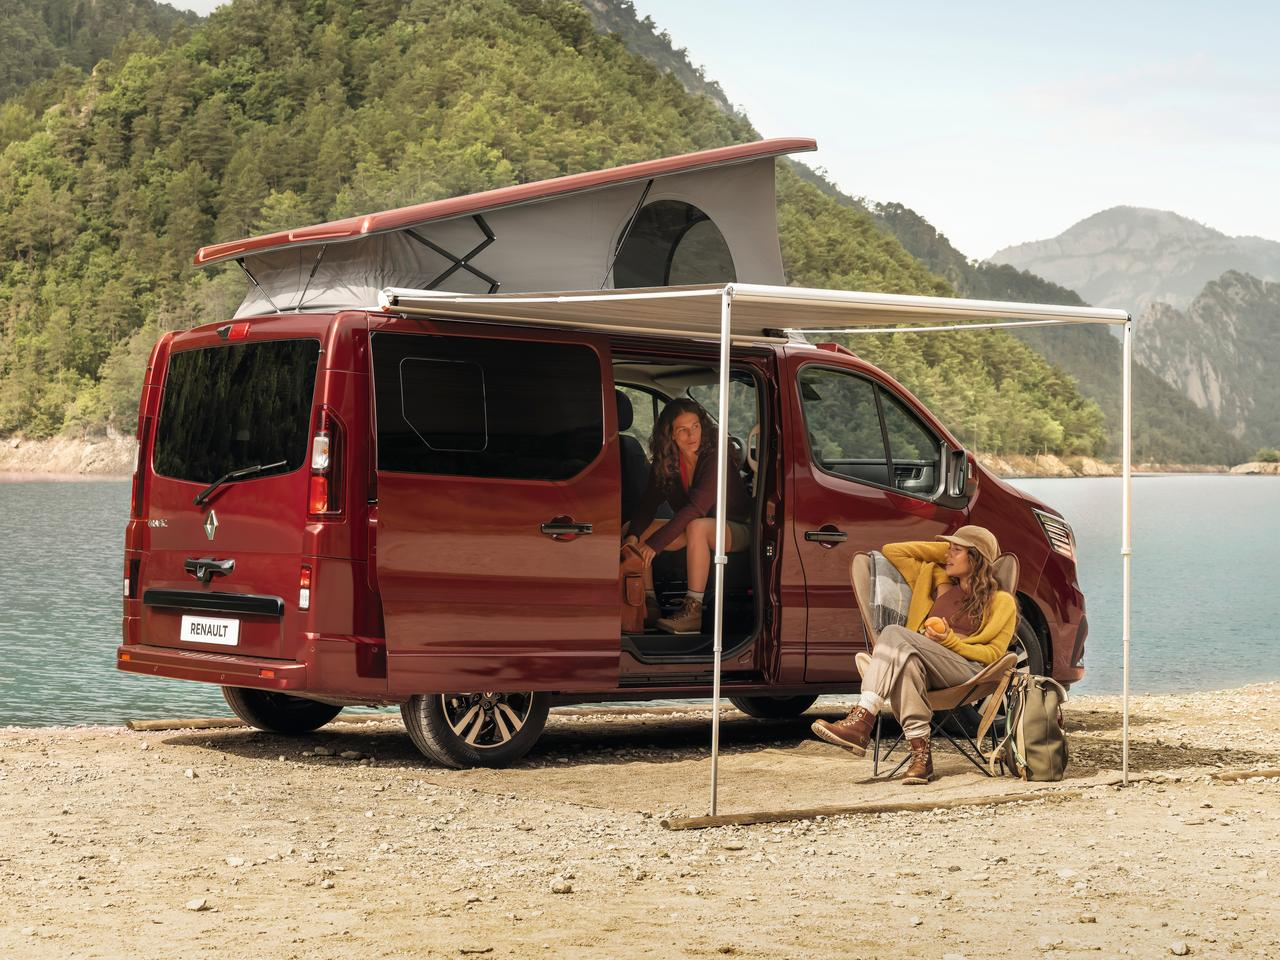 No pre-delivered deck or outhouse here, the SpaceNomad features a classic mid-size camper van layout with fold-down lower bed, pop-up sleeper roof and available side awning